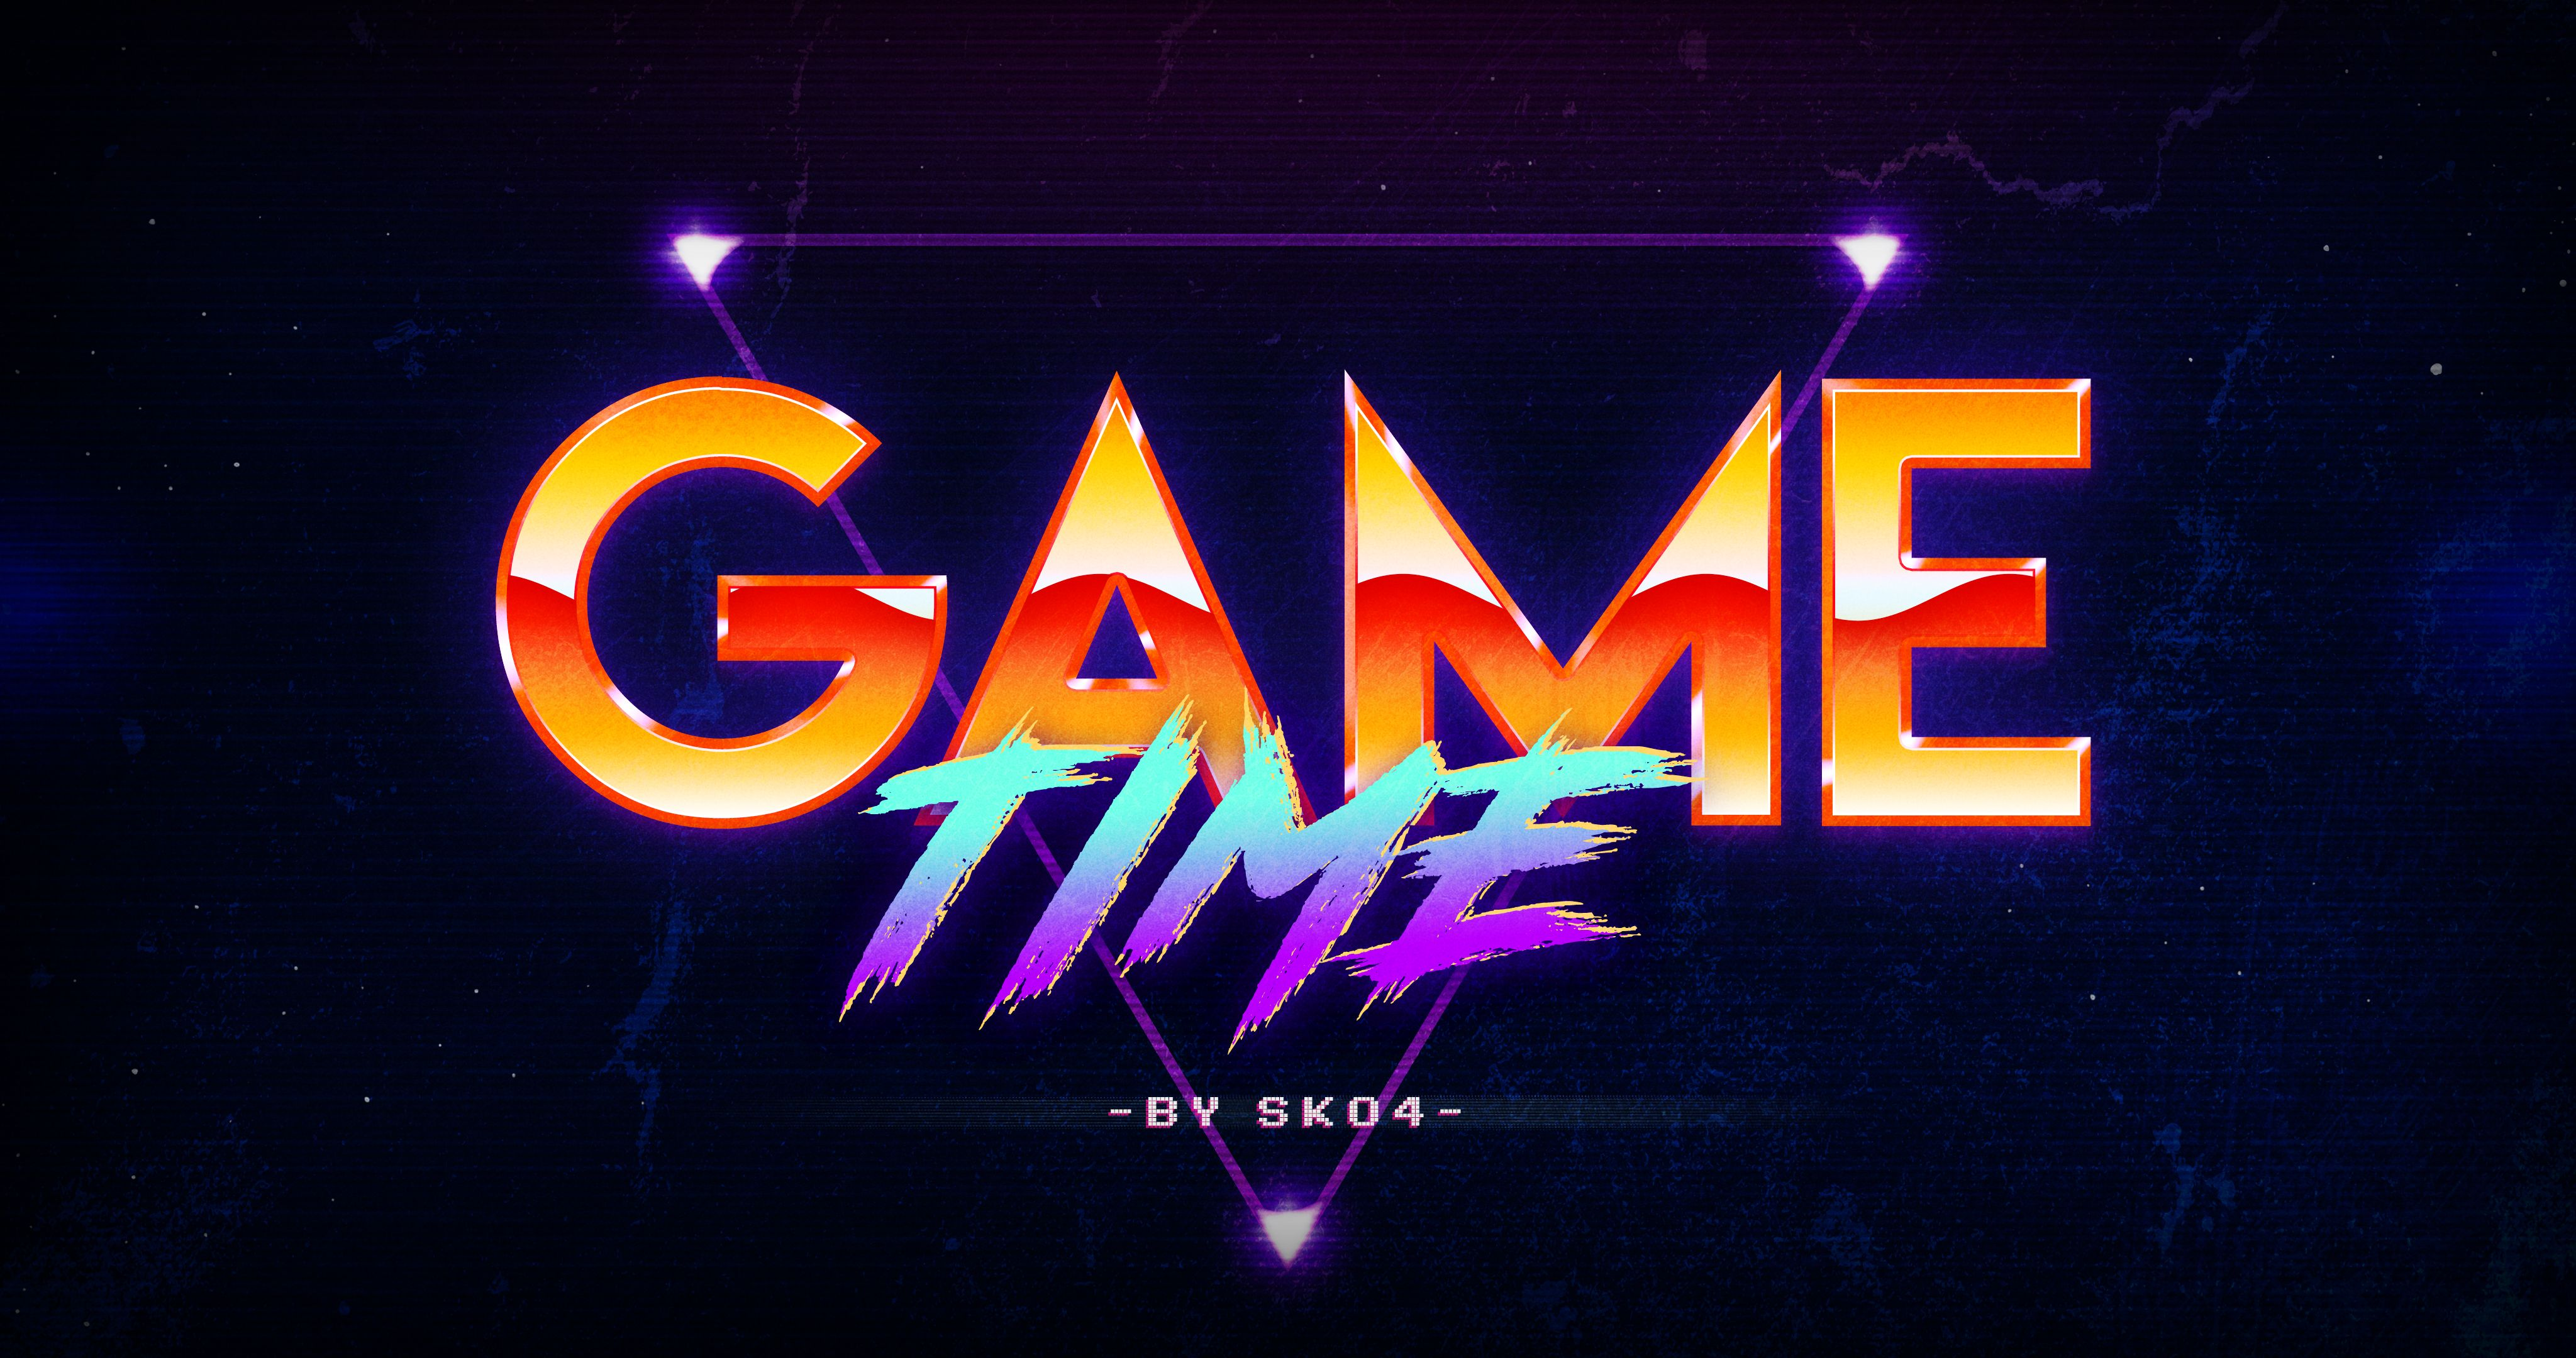 80s Retro Text Effects by Sko4 | GraphicRiver #texteffect